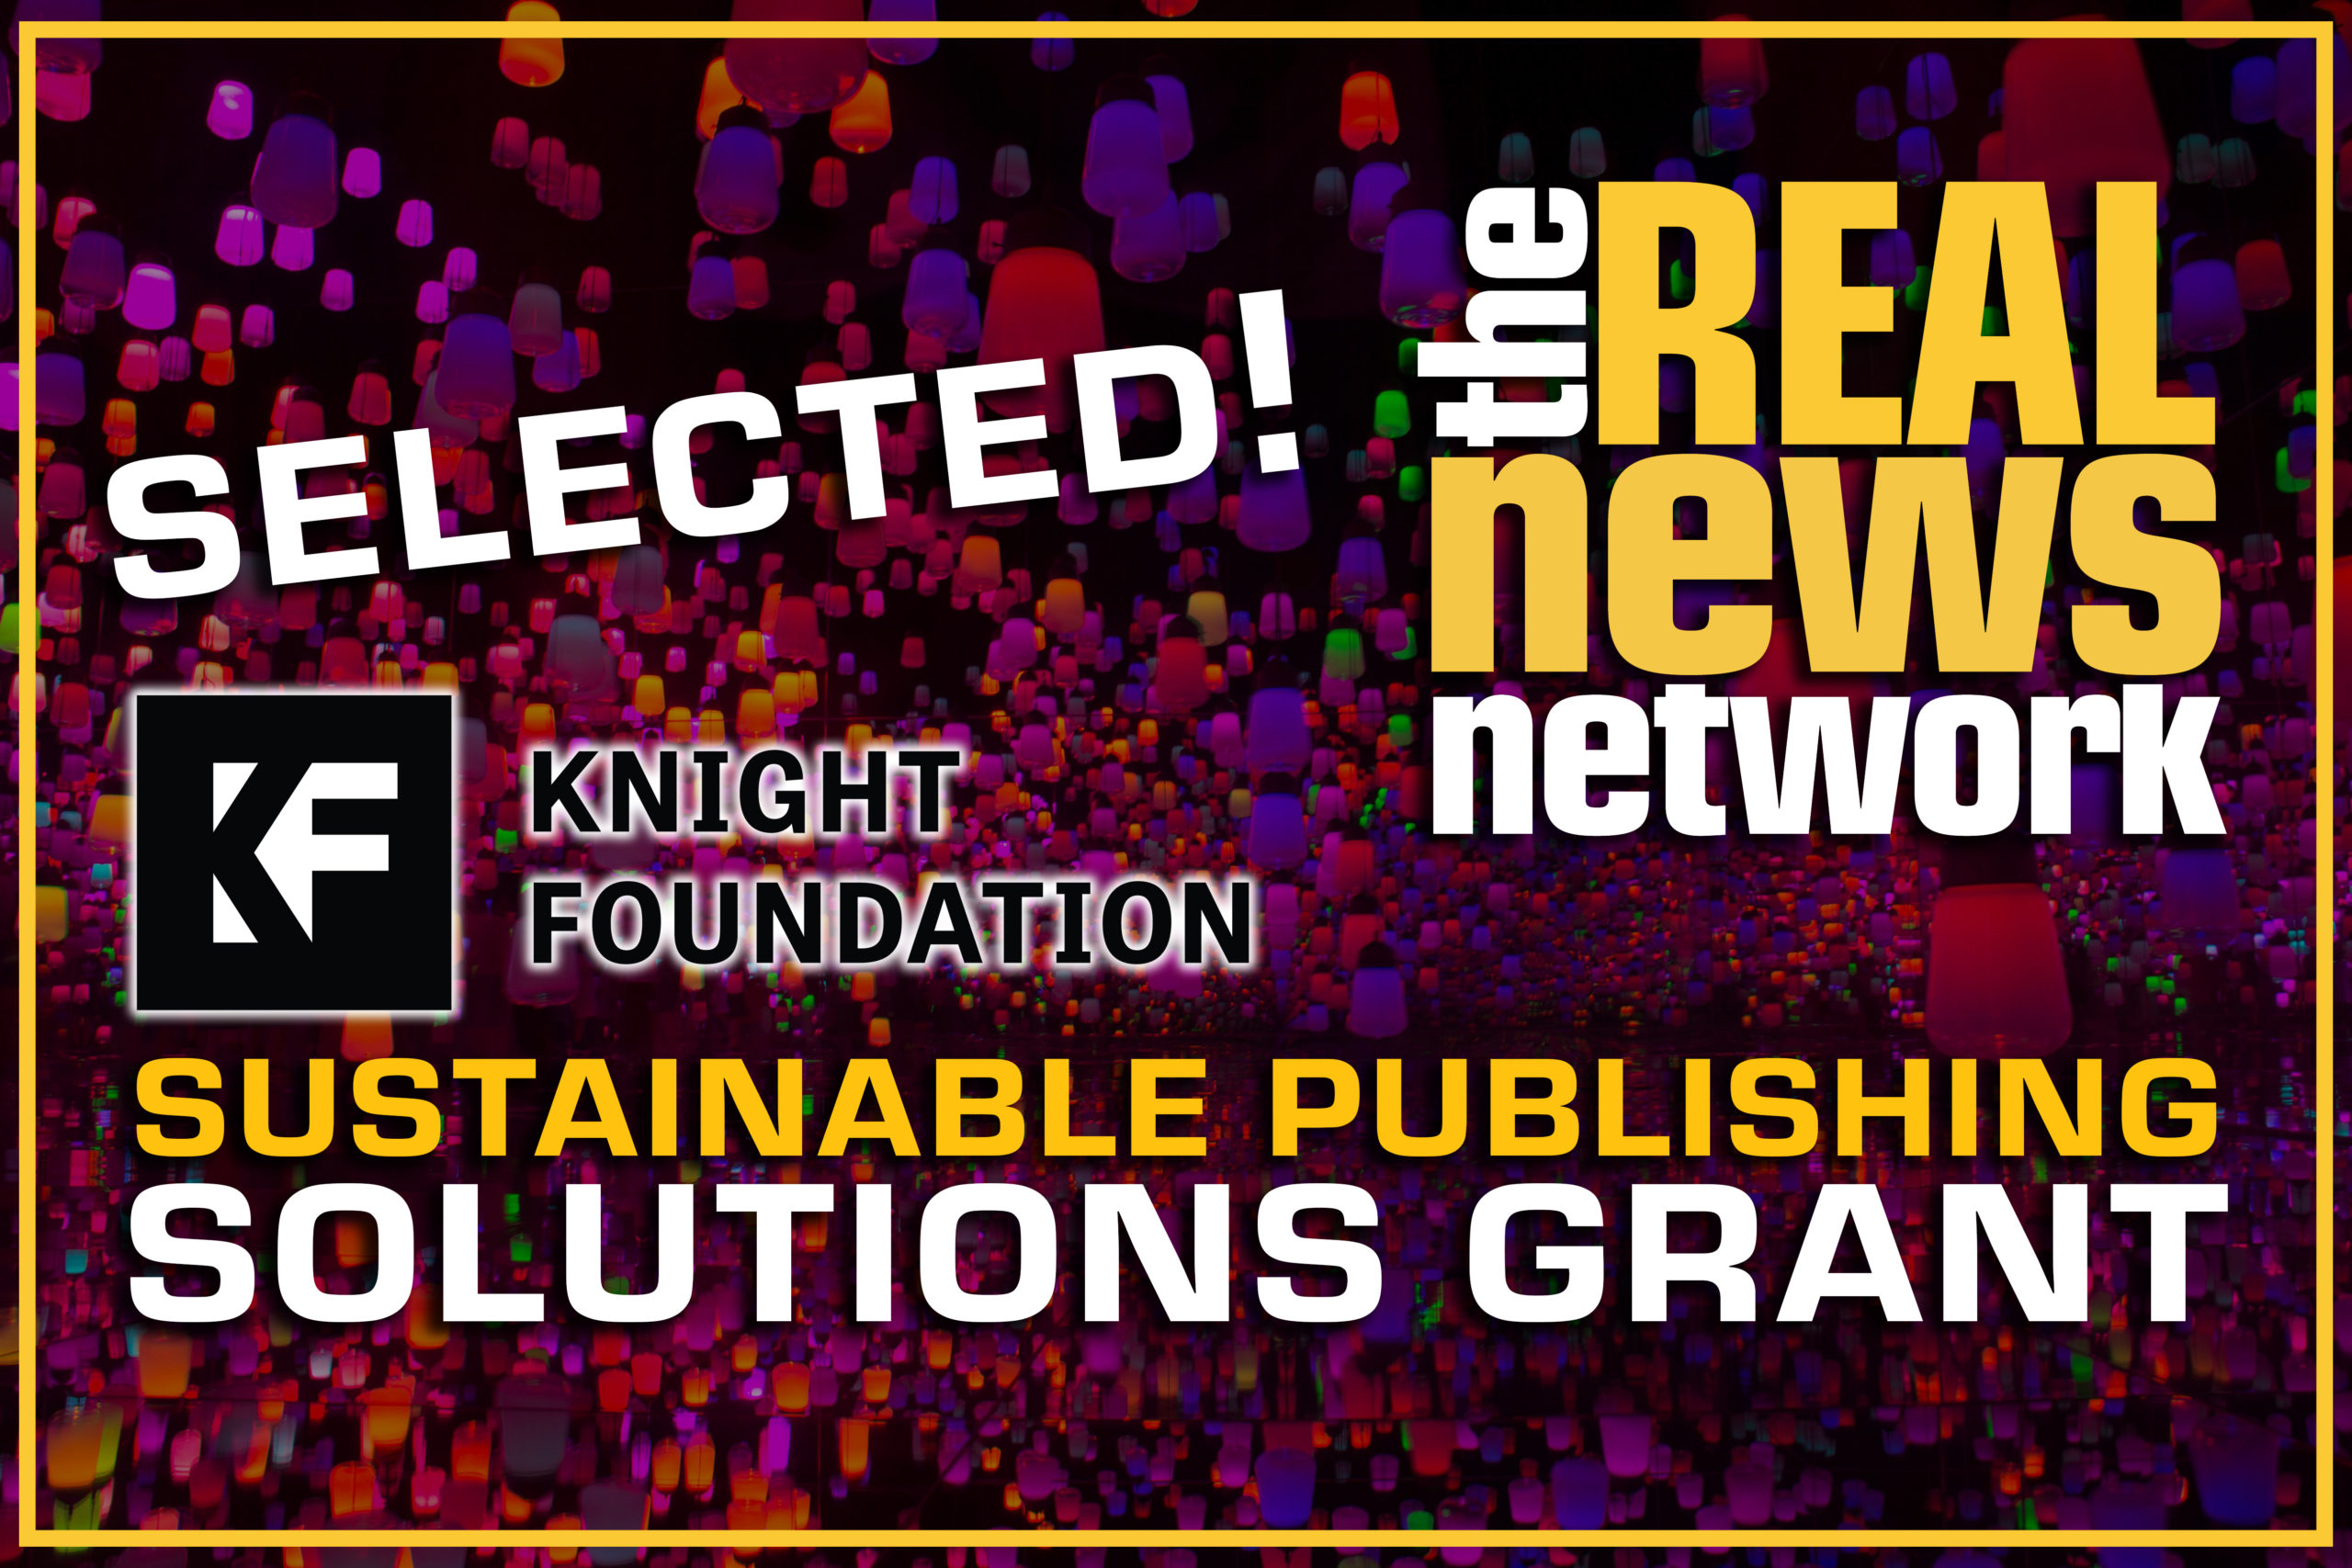 Real News Selected for Knight Foundation Grant